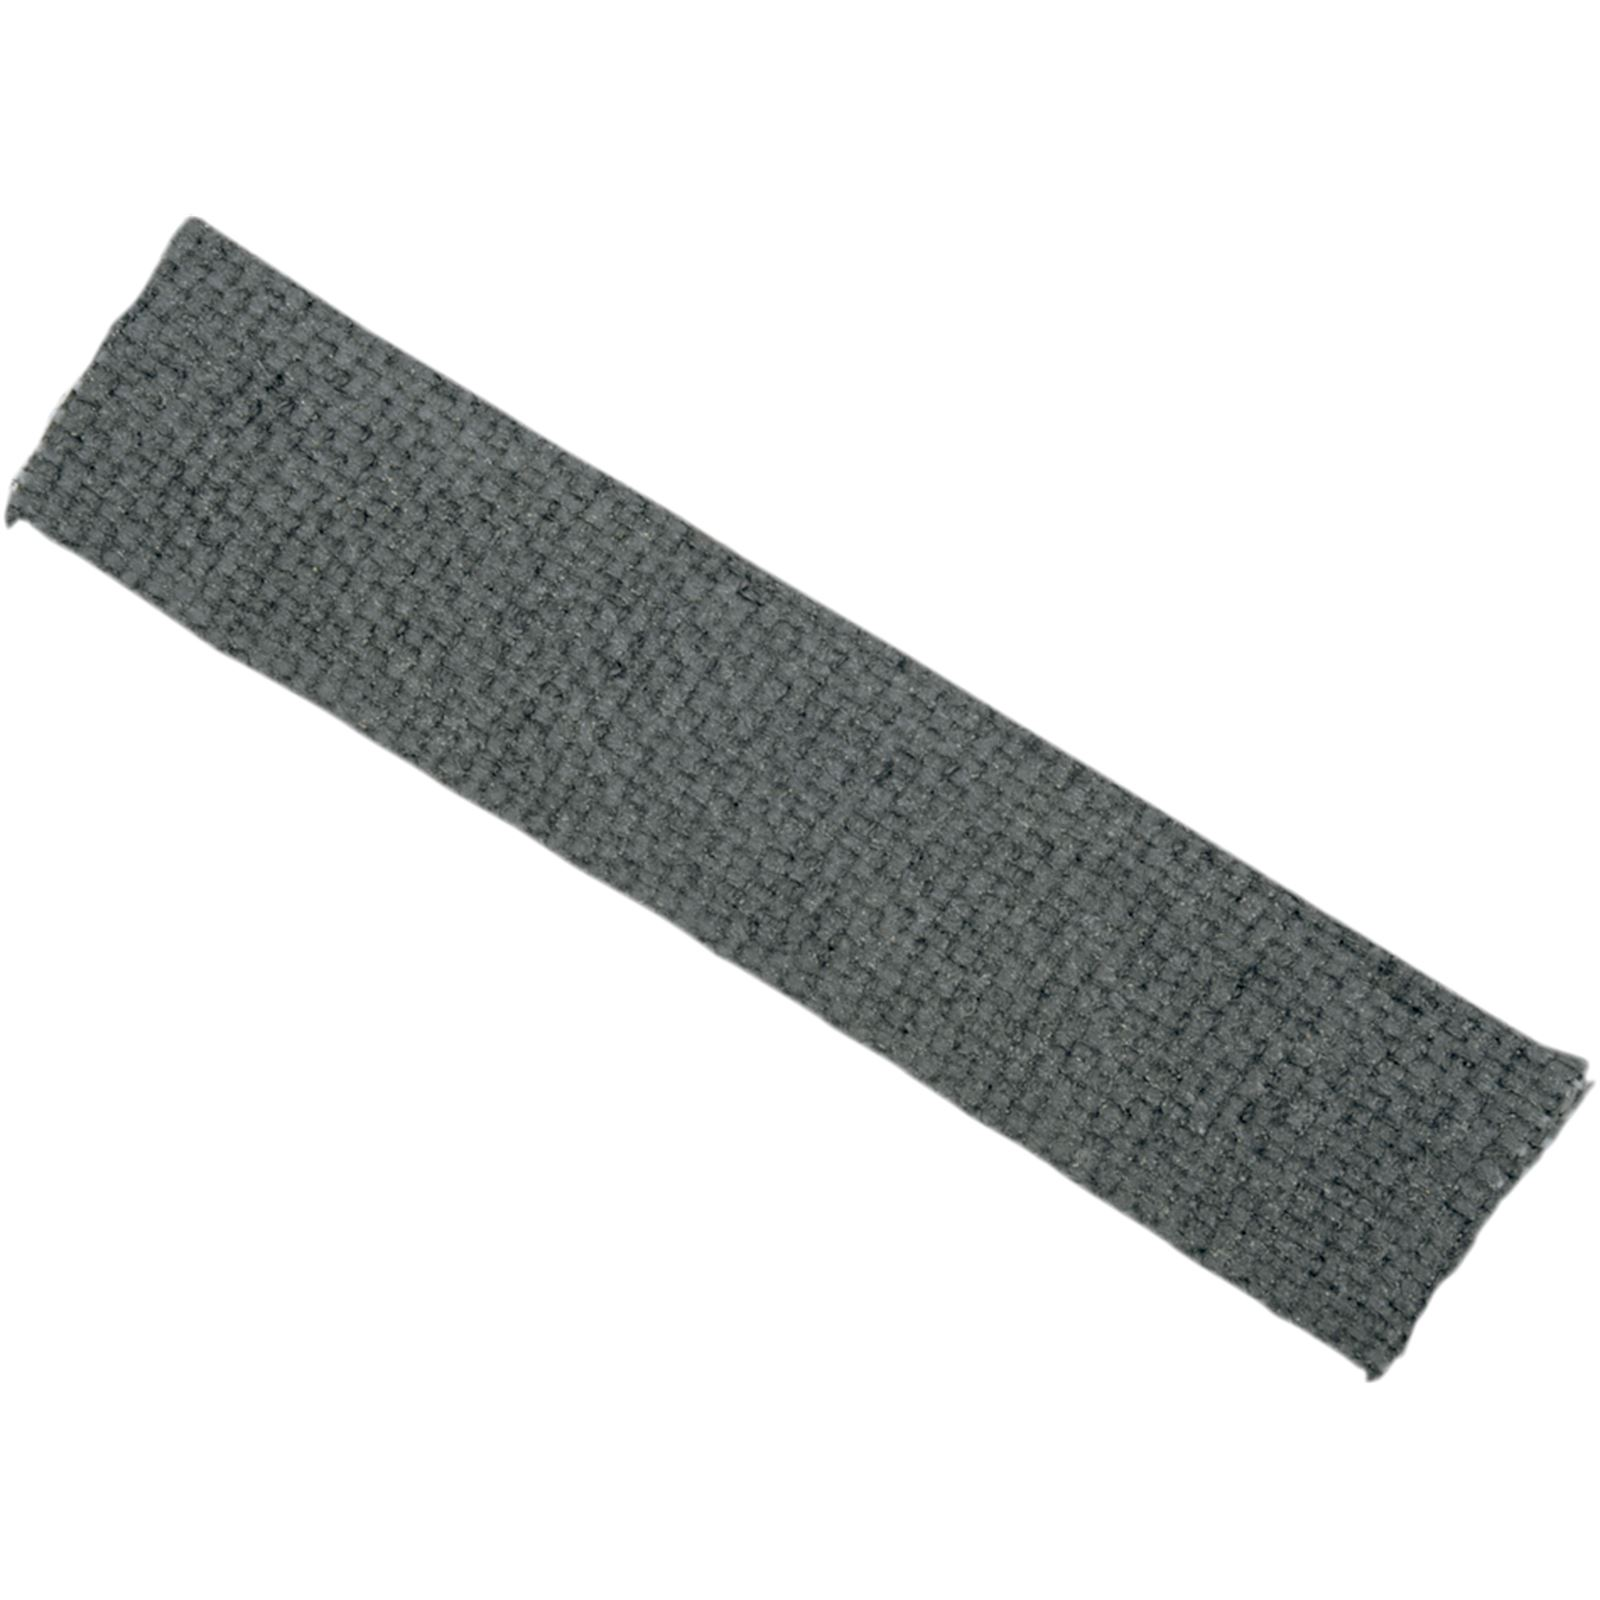 Cycle Performance Exhaust Wrap - Black - 2x50